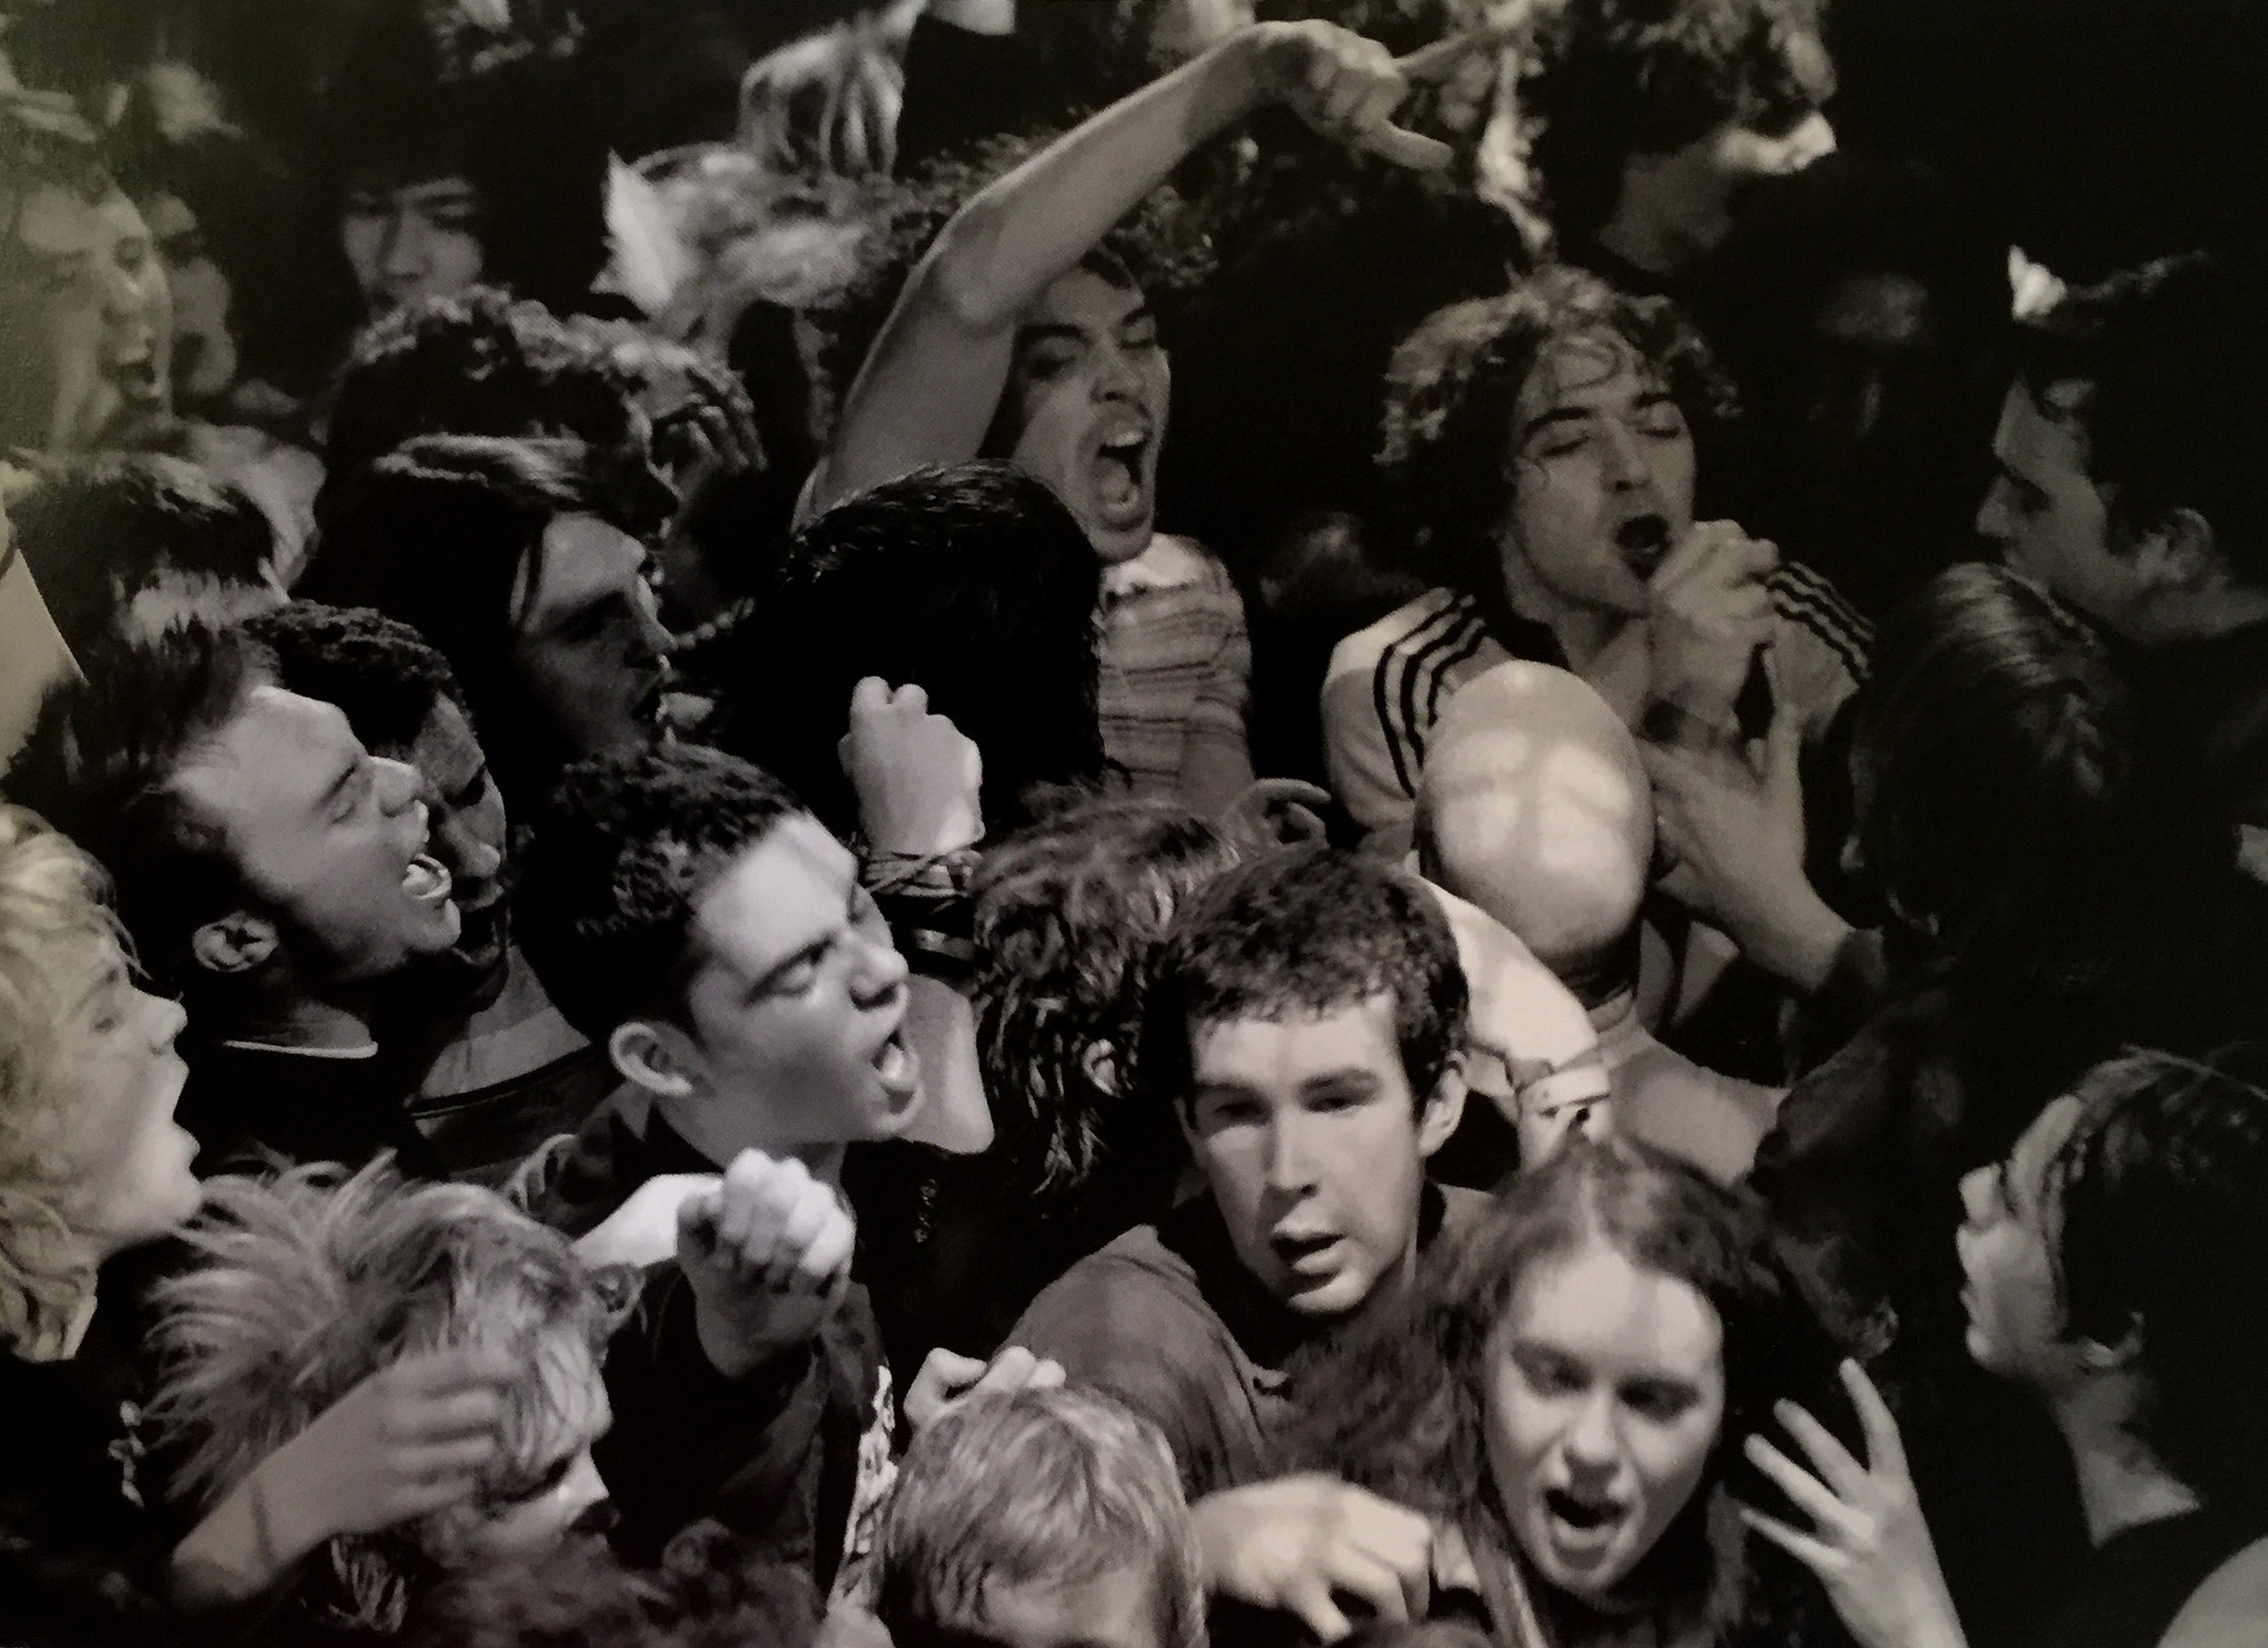 Lond_Birth_of_a_Cult_Hedi_Pete_Dorety_Crowd.jpg